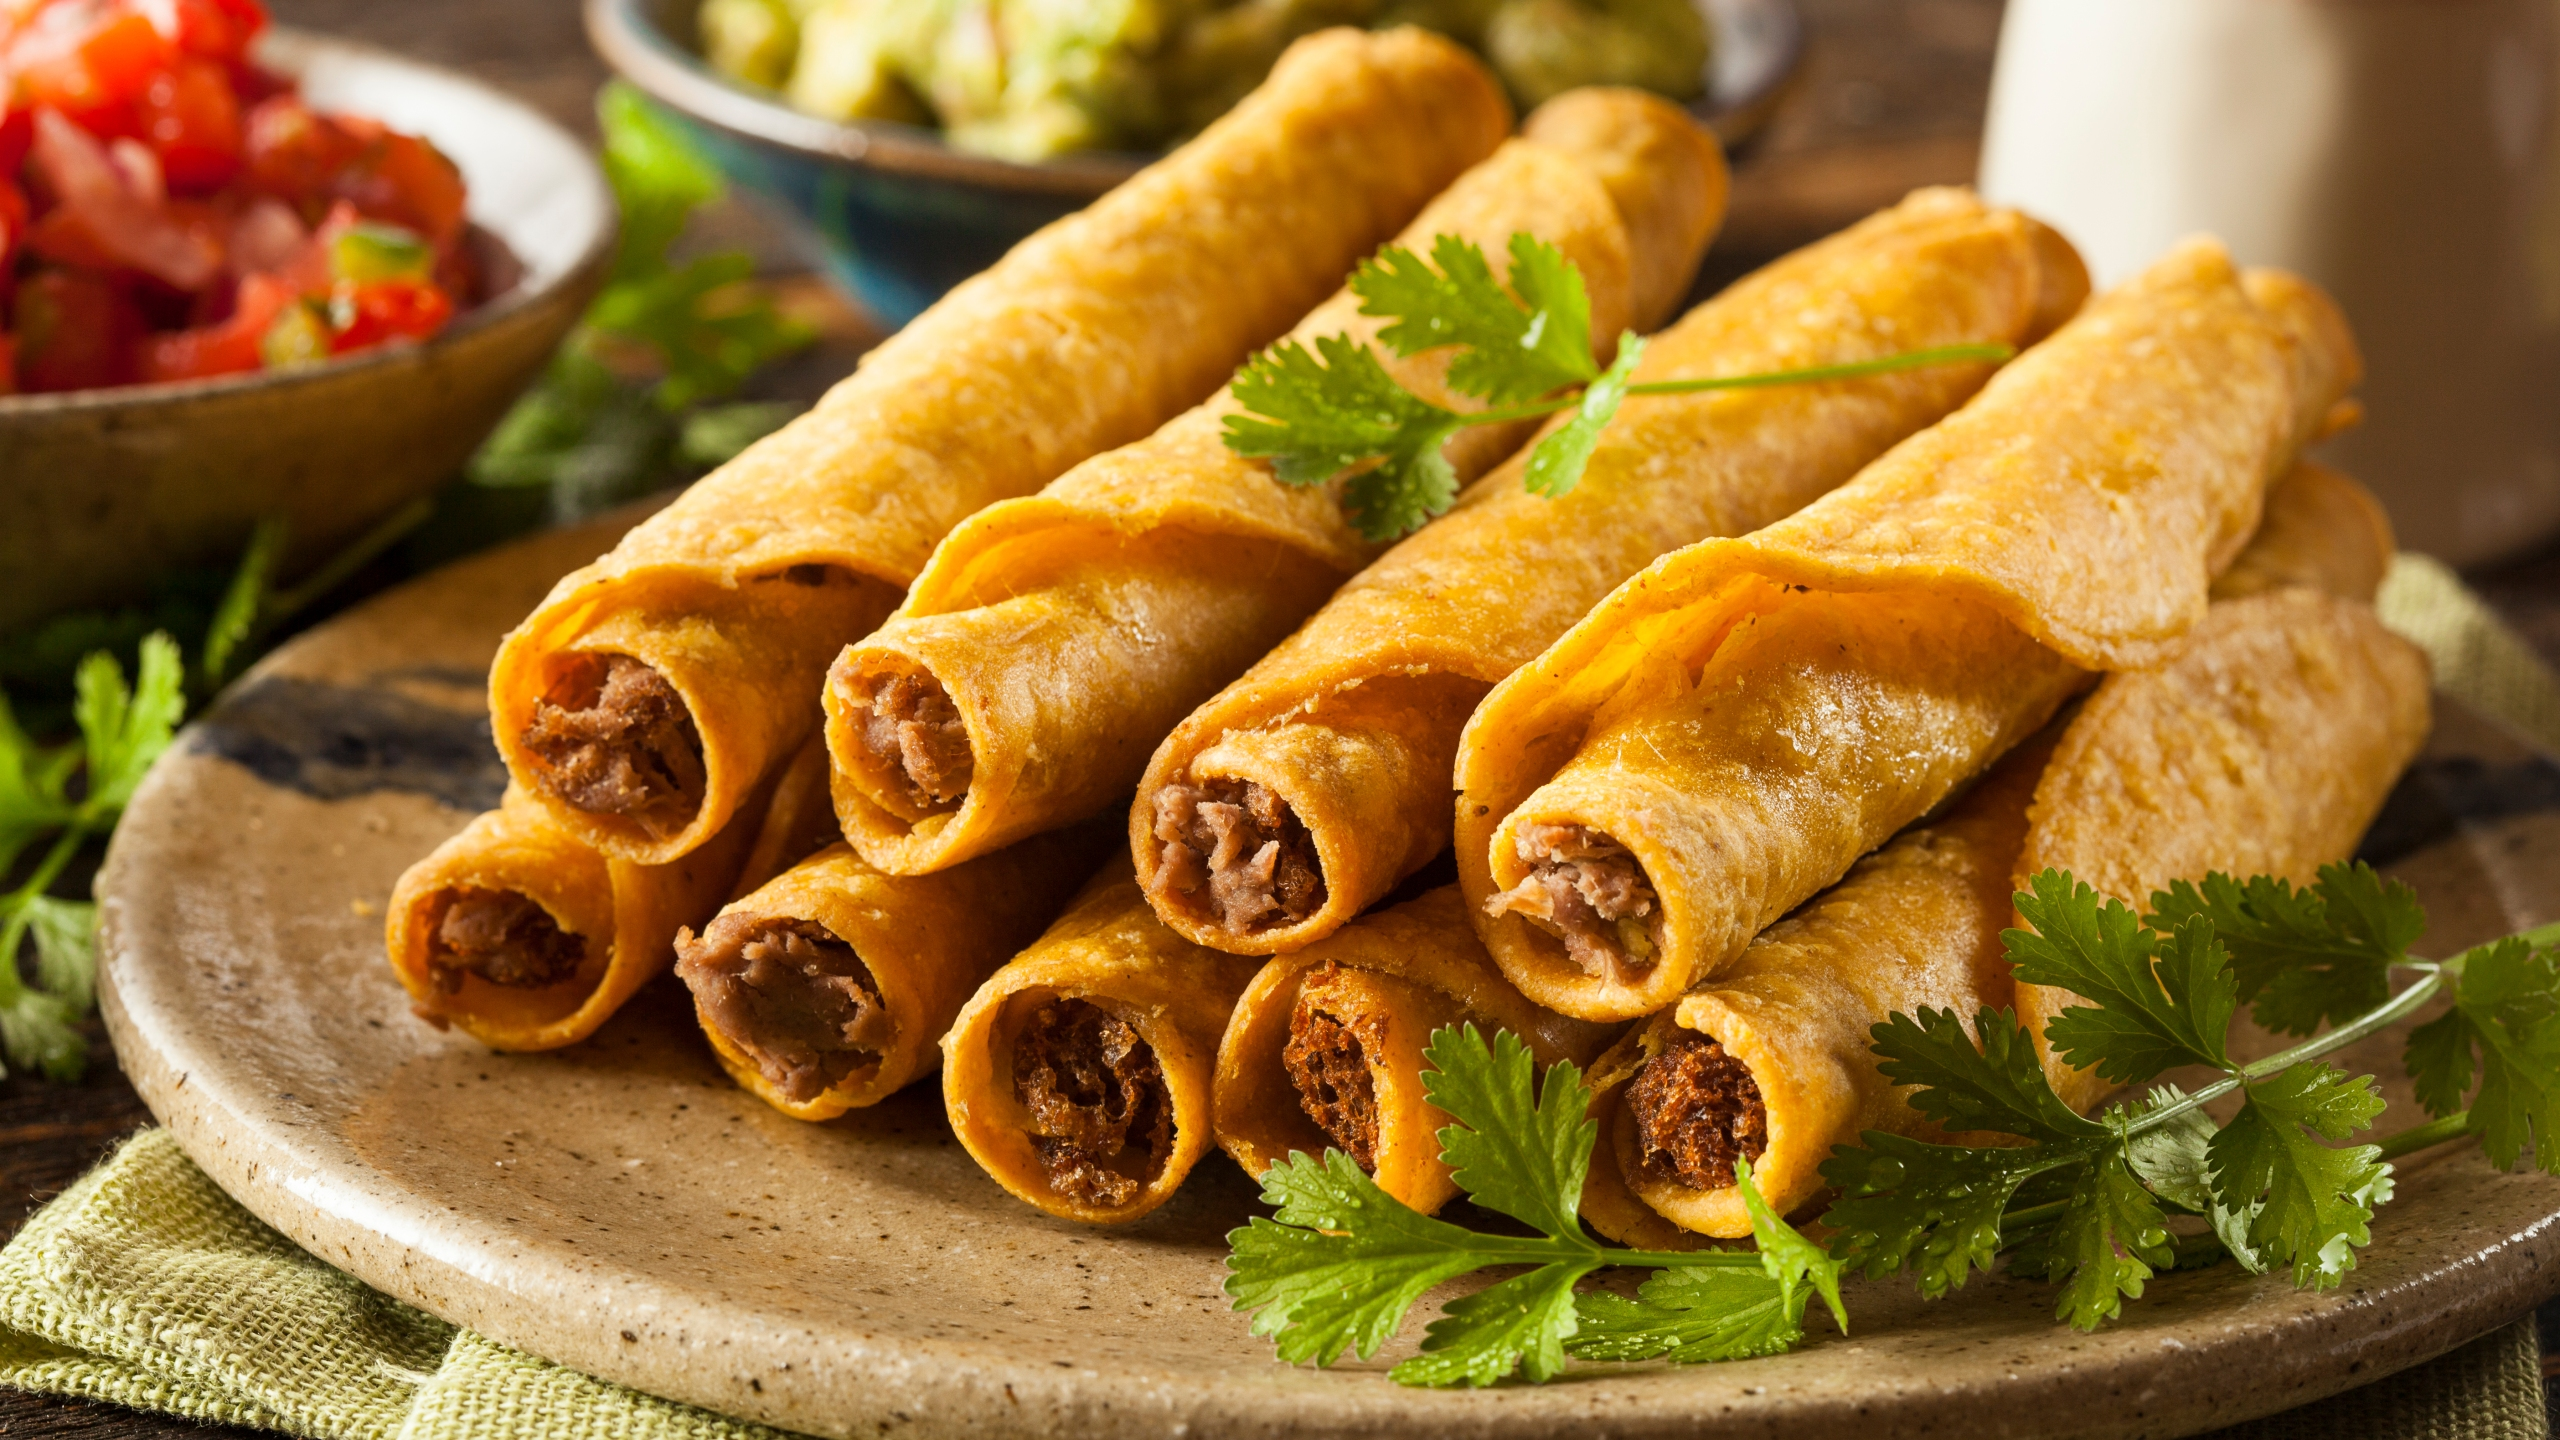 Taquitos are seen in a file photo. (Credit: iStock / Getty Image Plus)